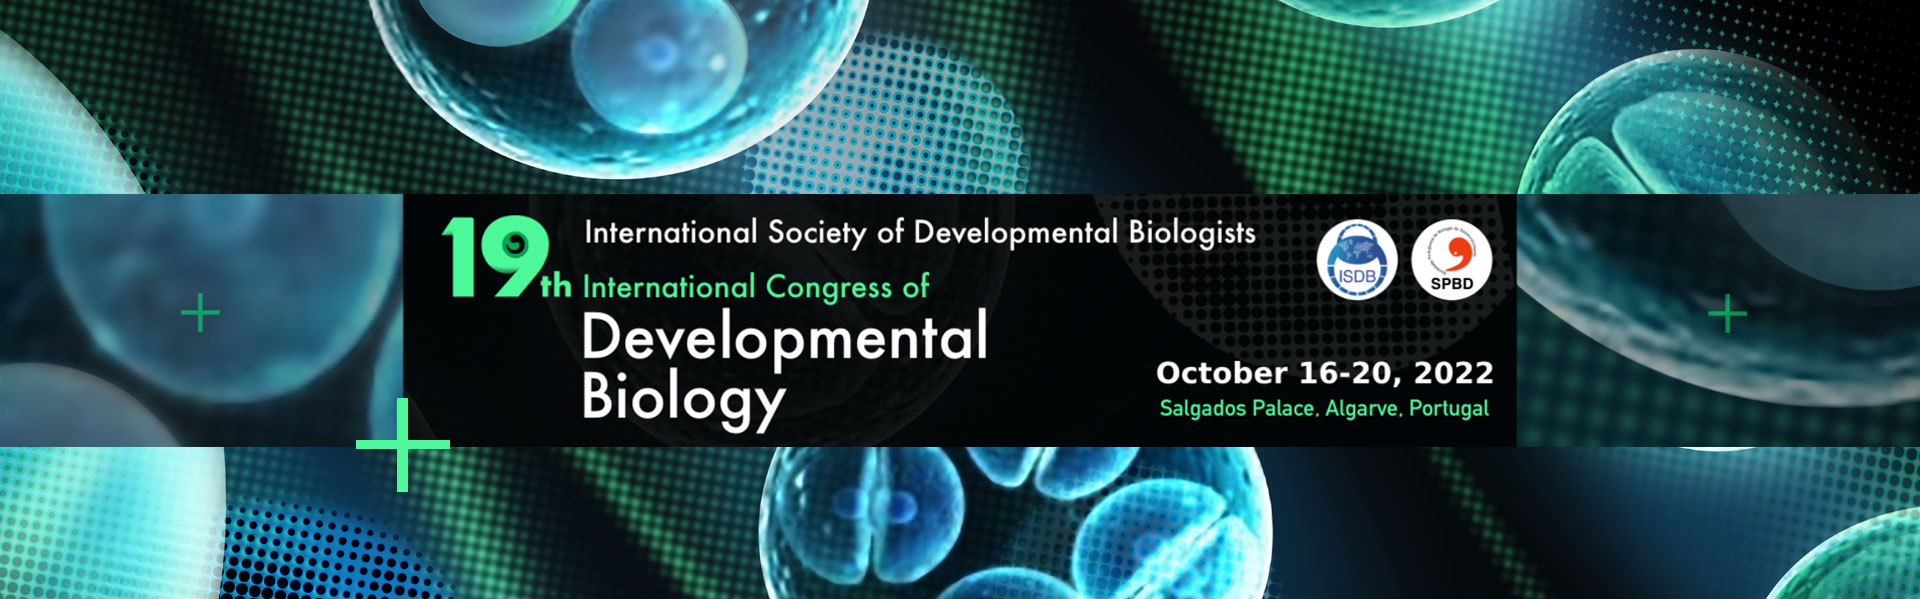 isdb2021-conference-banner-12042021